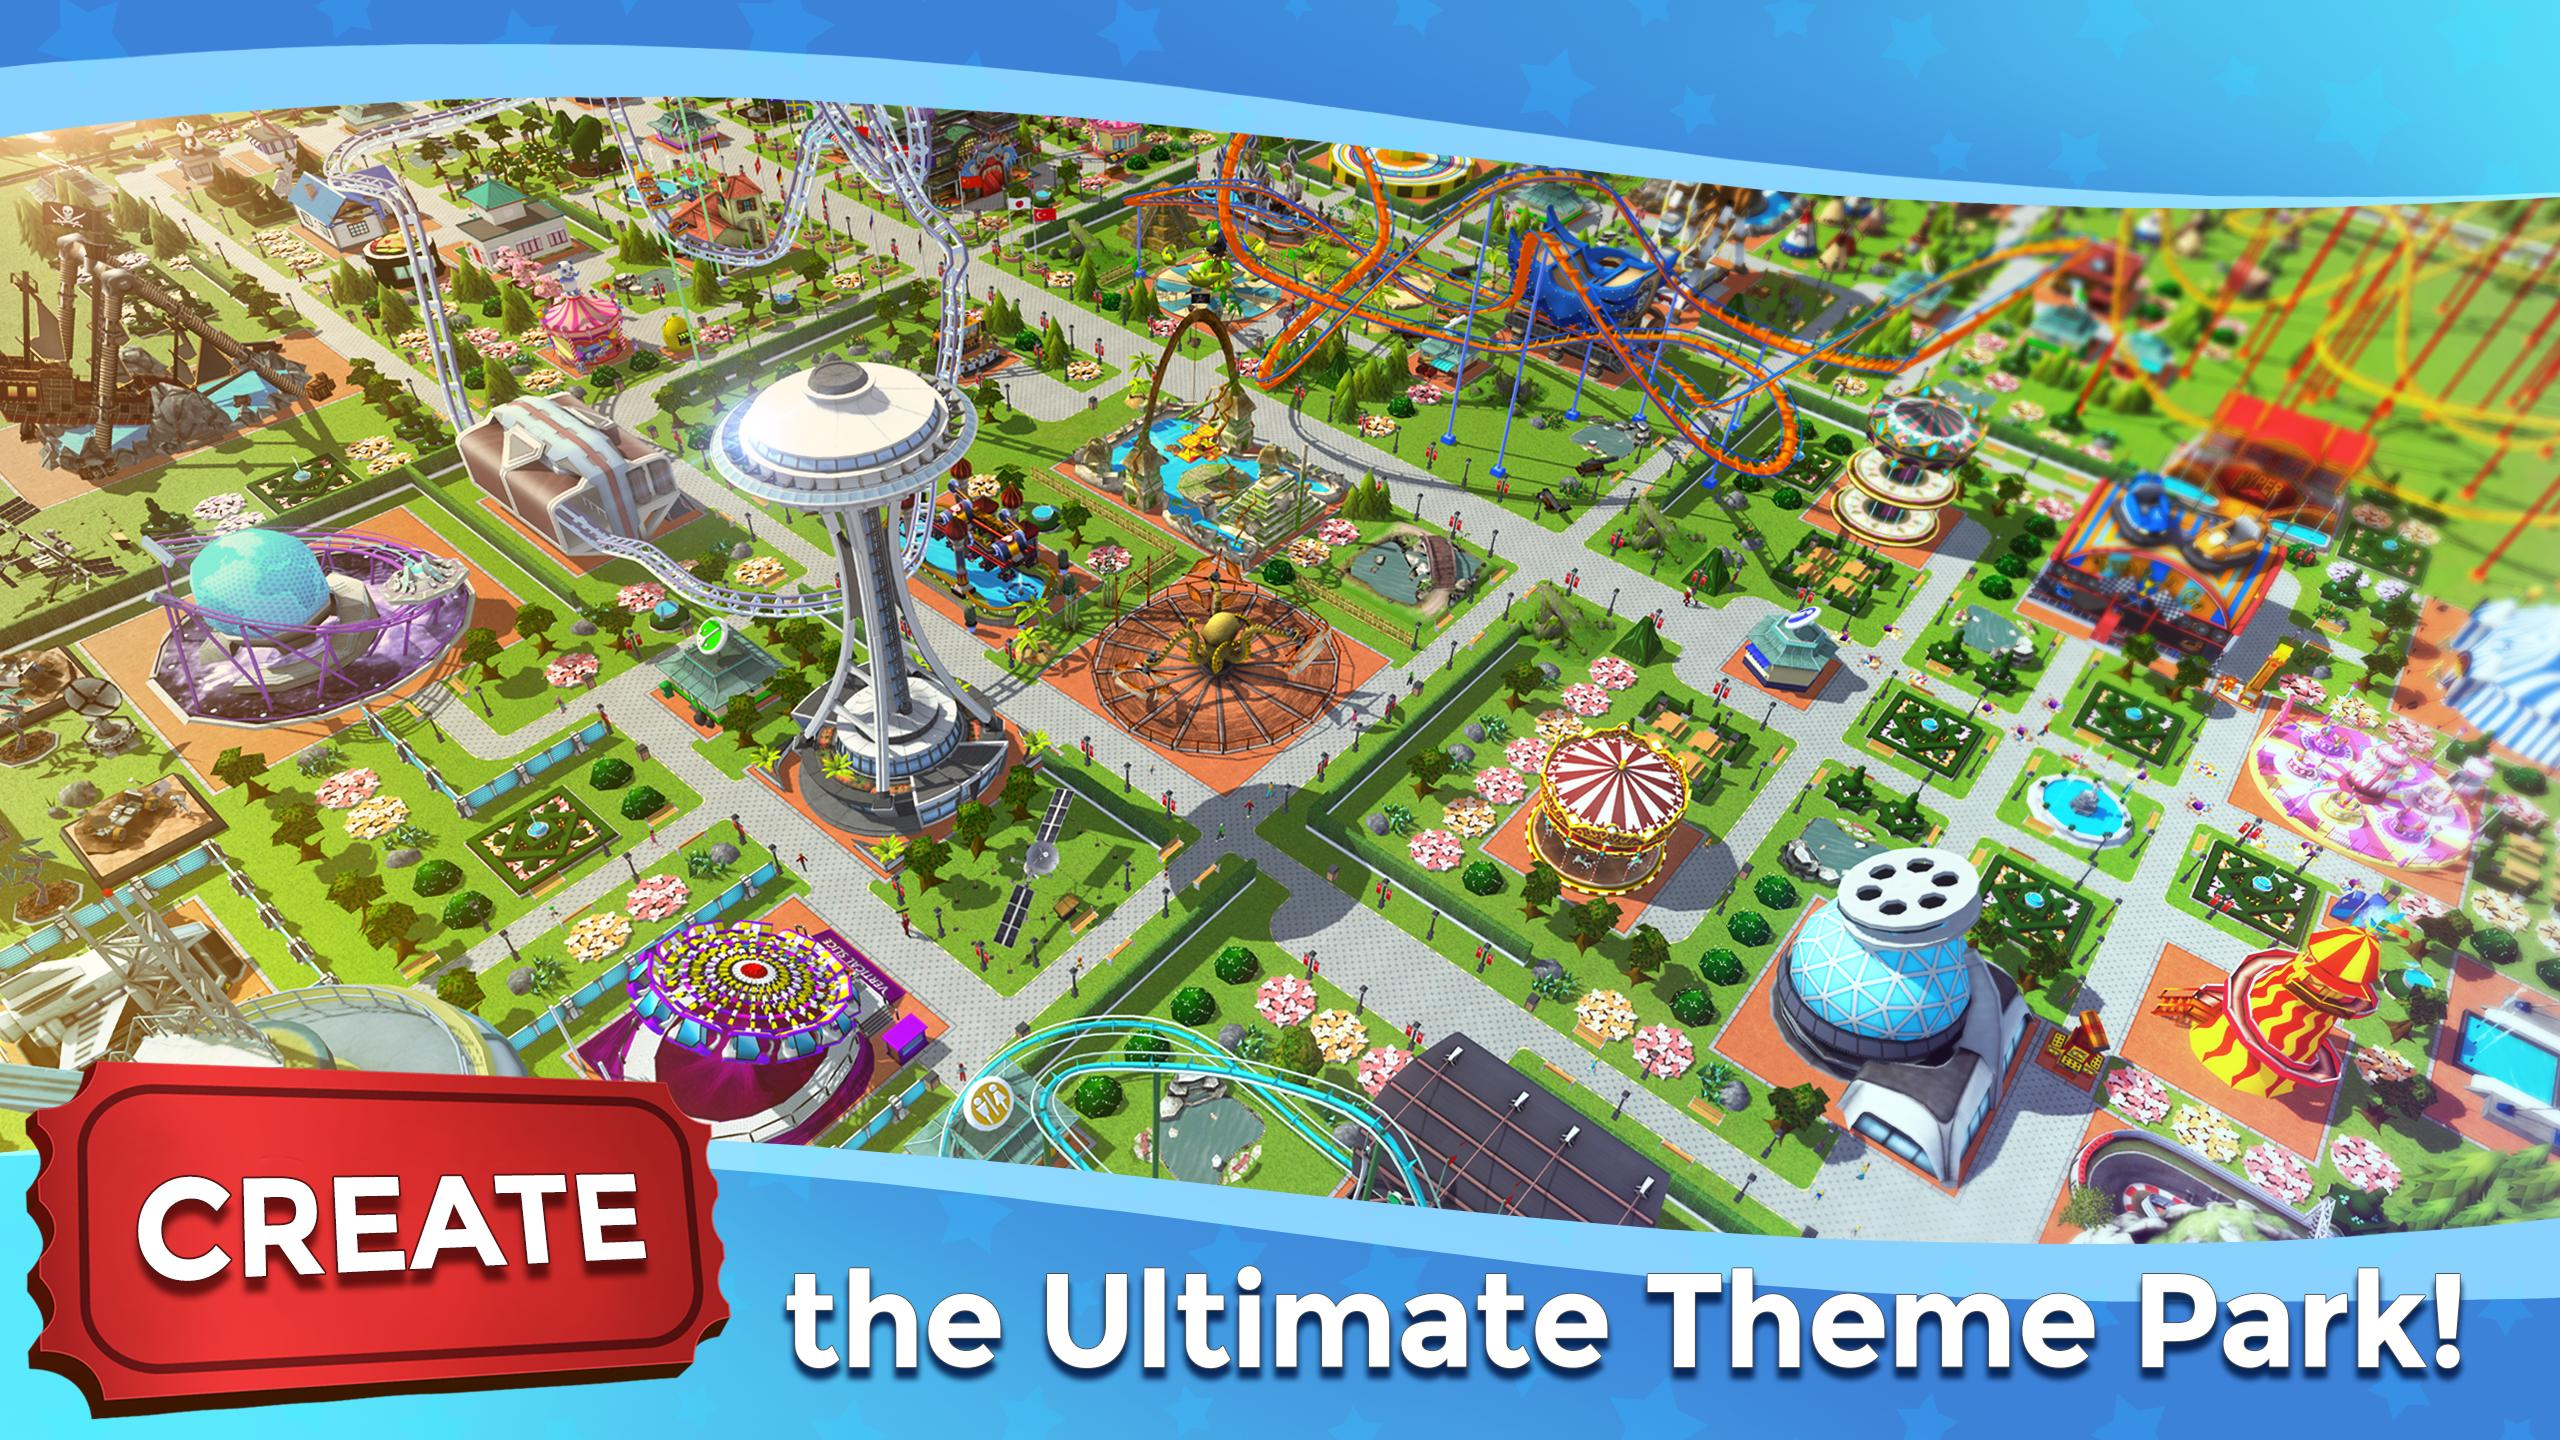 RollerCoaster Tycoon Touch - Build your Theme Park 3.5.0 Screenshot 1